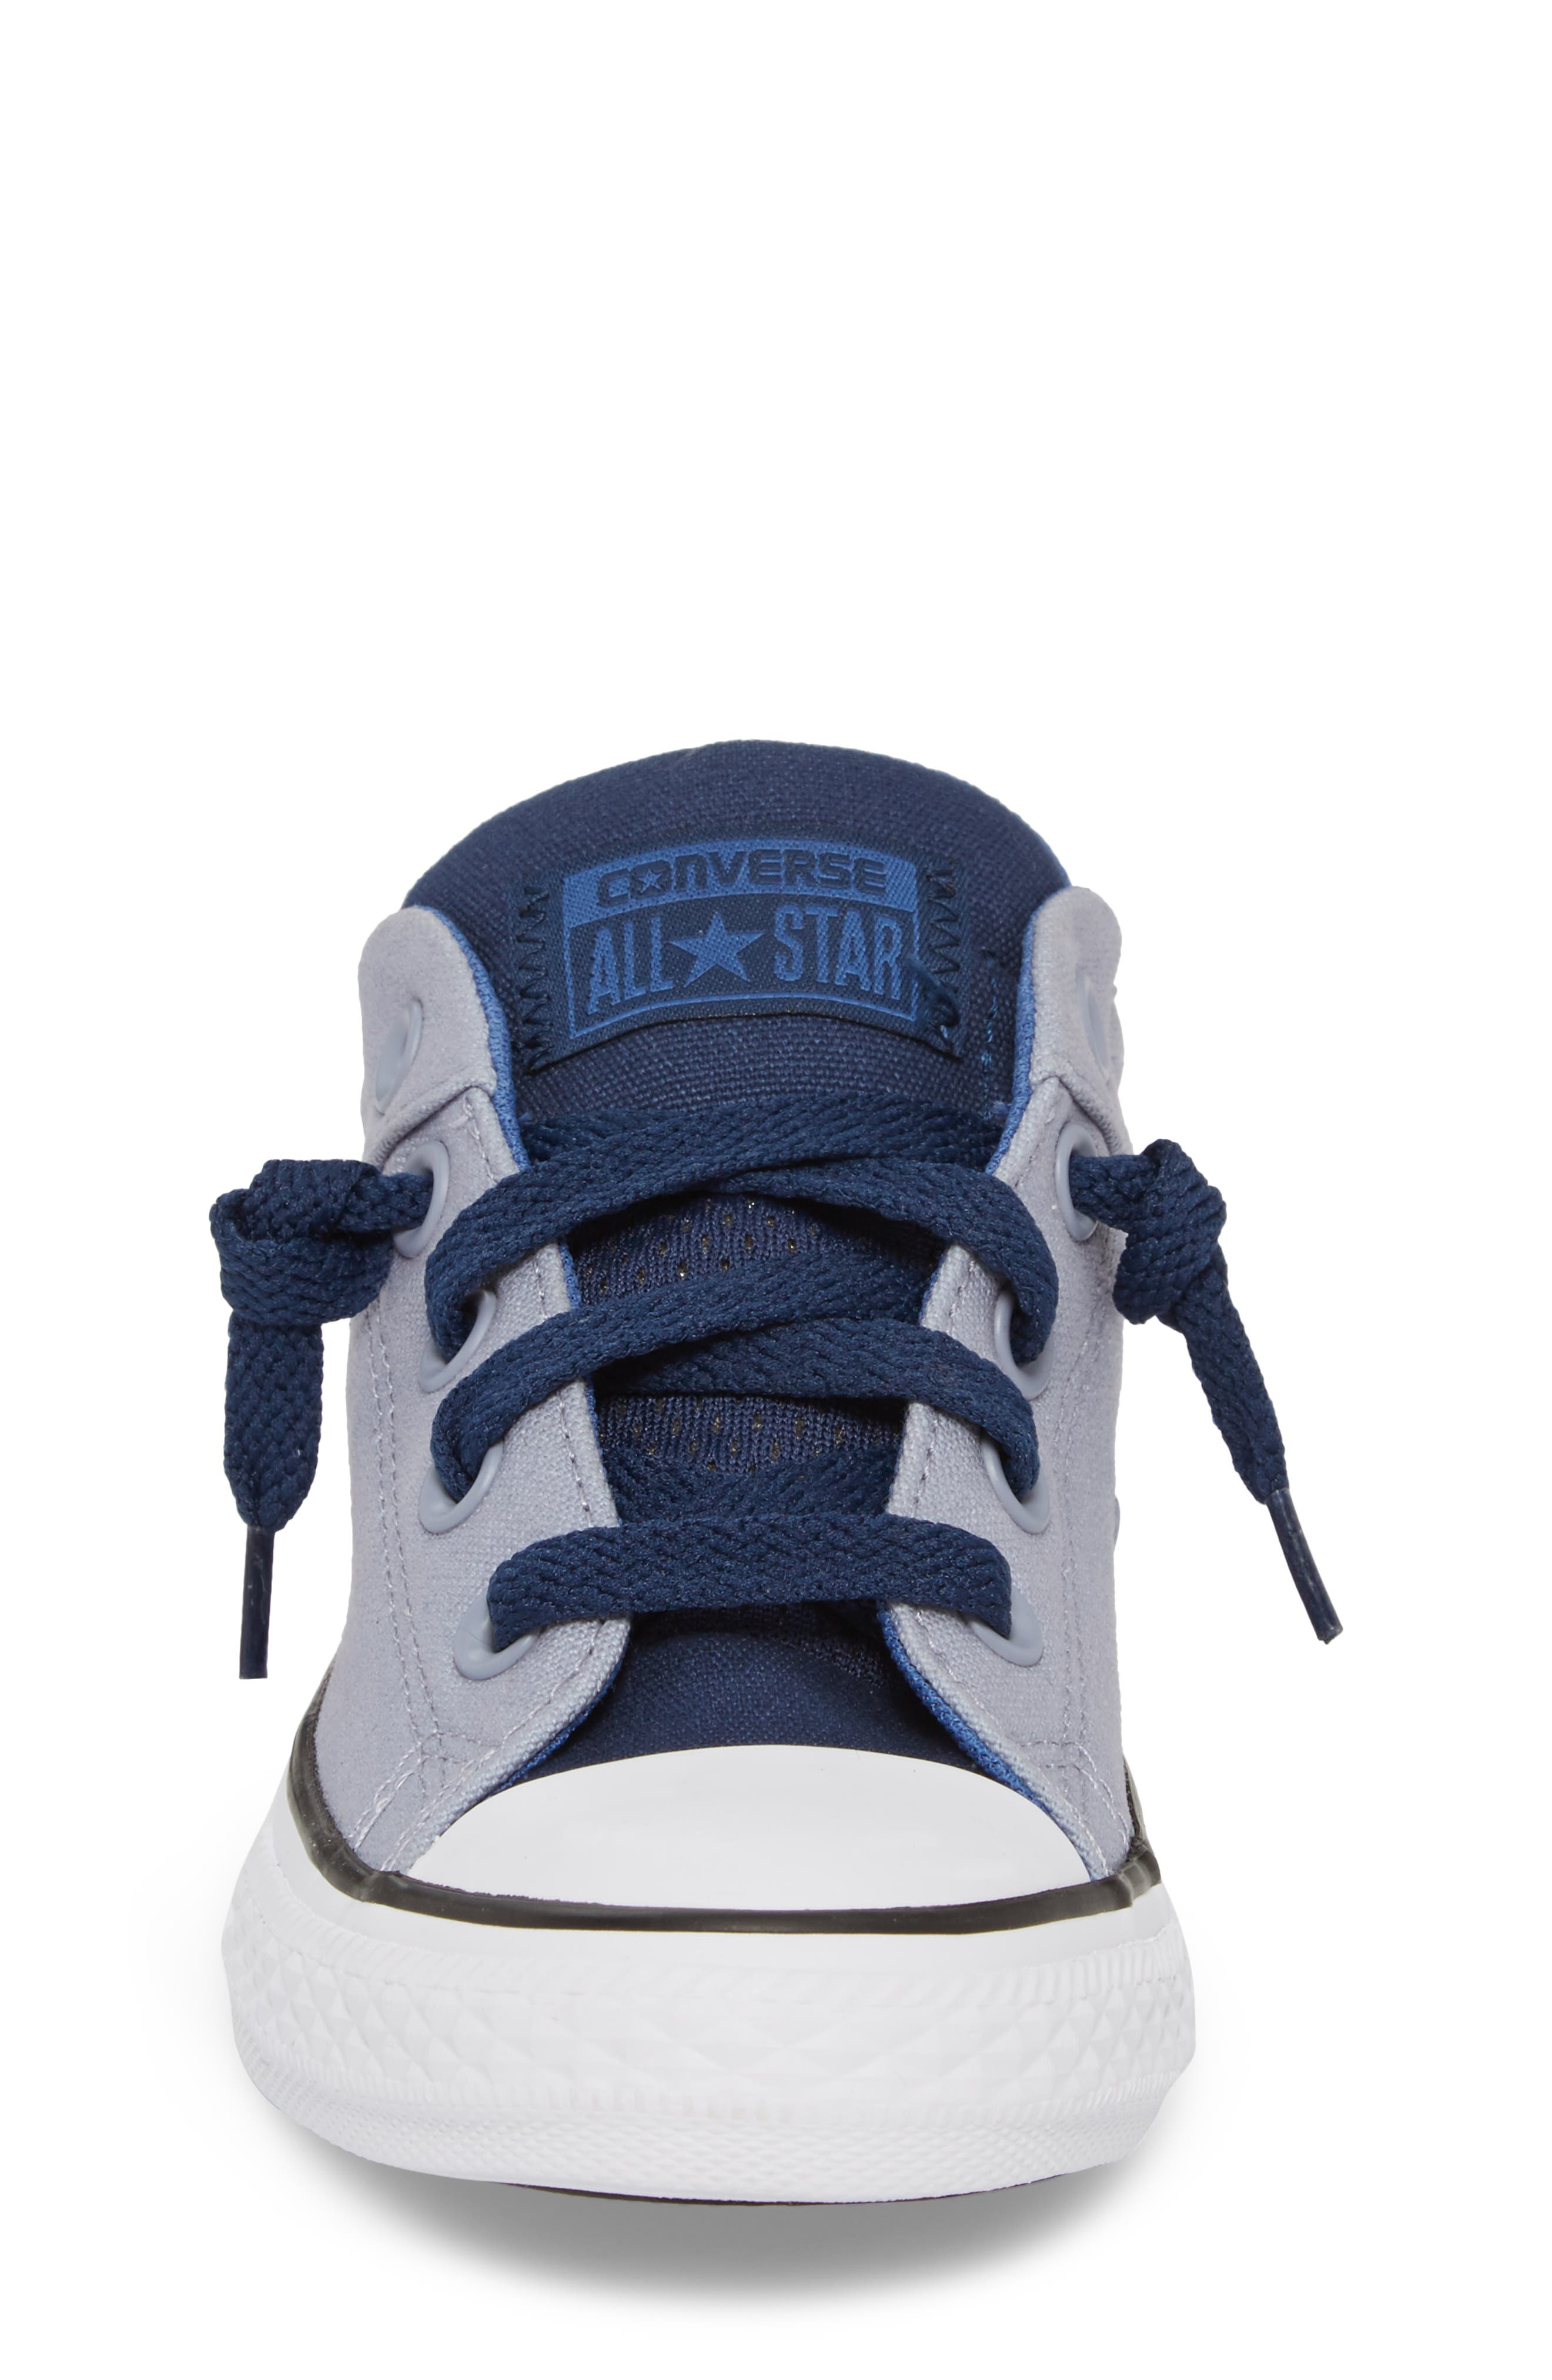 Chuck Taylor<sup>®</sup> All Star<sup>®</sup> 'High Street' Slip-On Sneaker,                             Alternate thumbnail 4, color,                             022